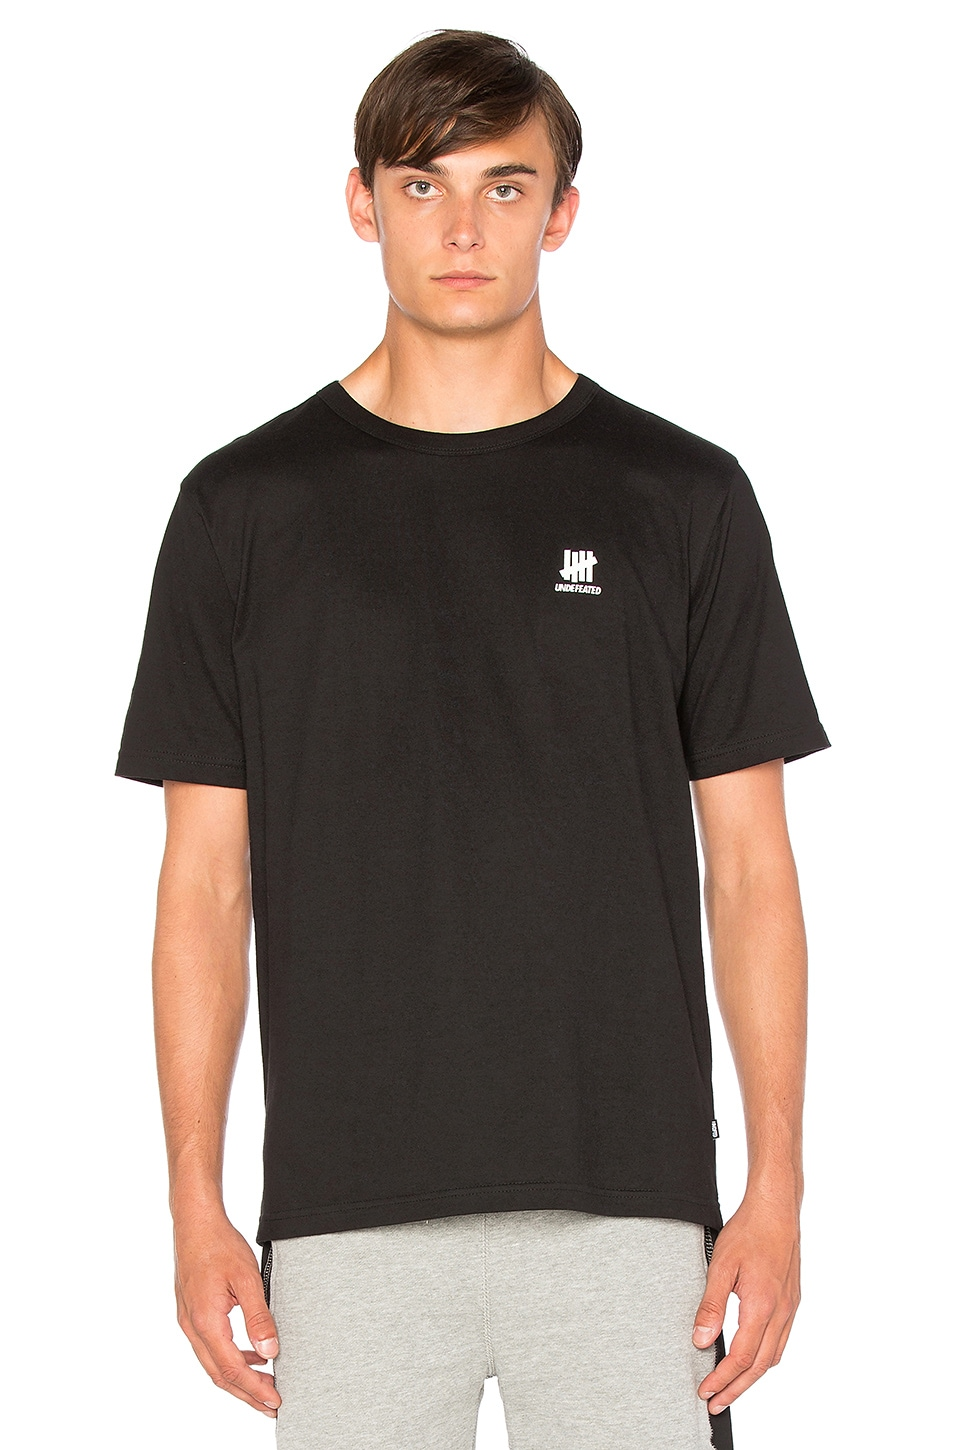 686a1bdb3828e Undefeated UNDFTD Basic Crew in Black